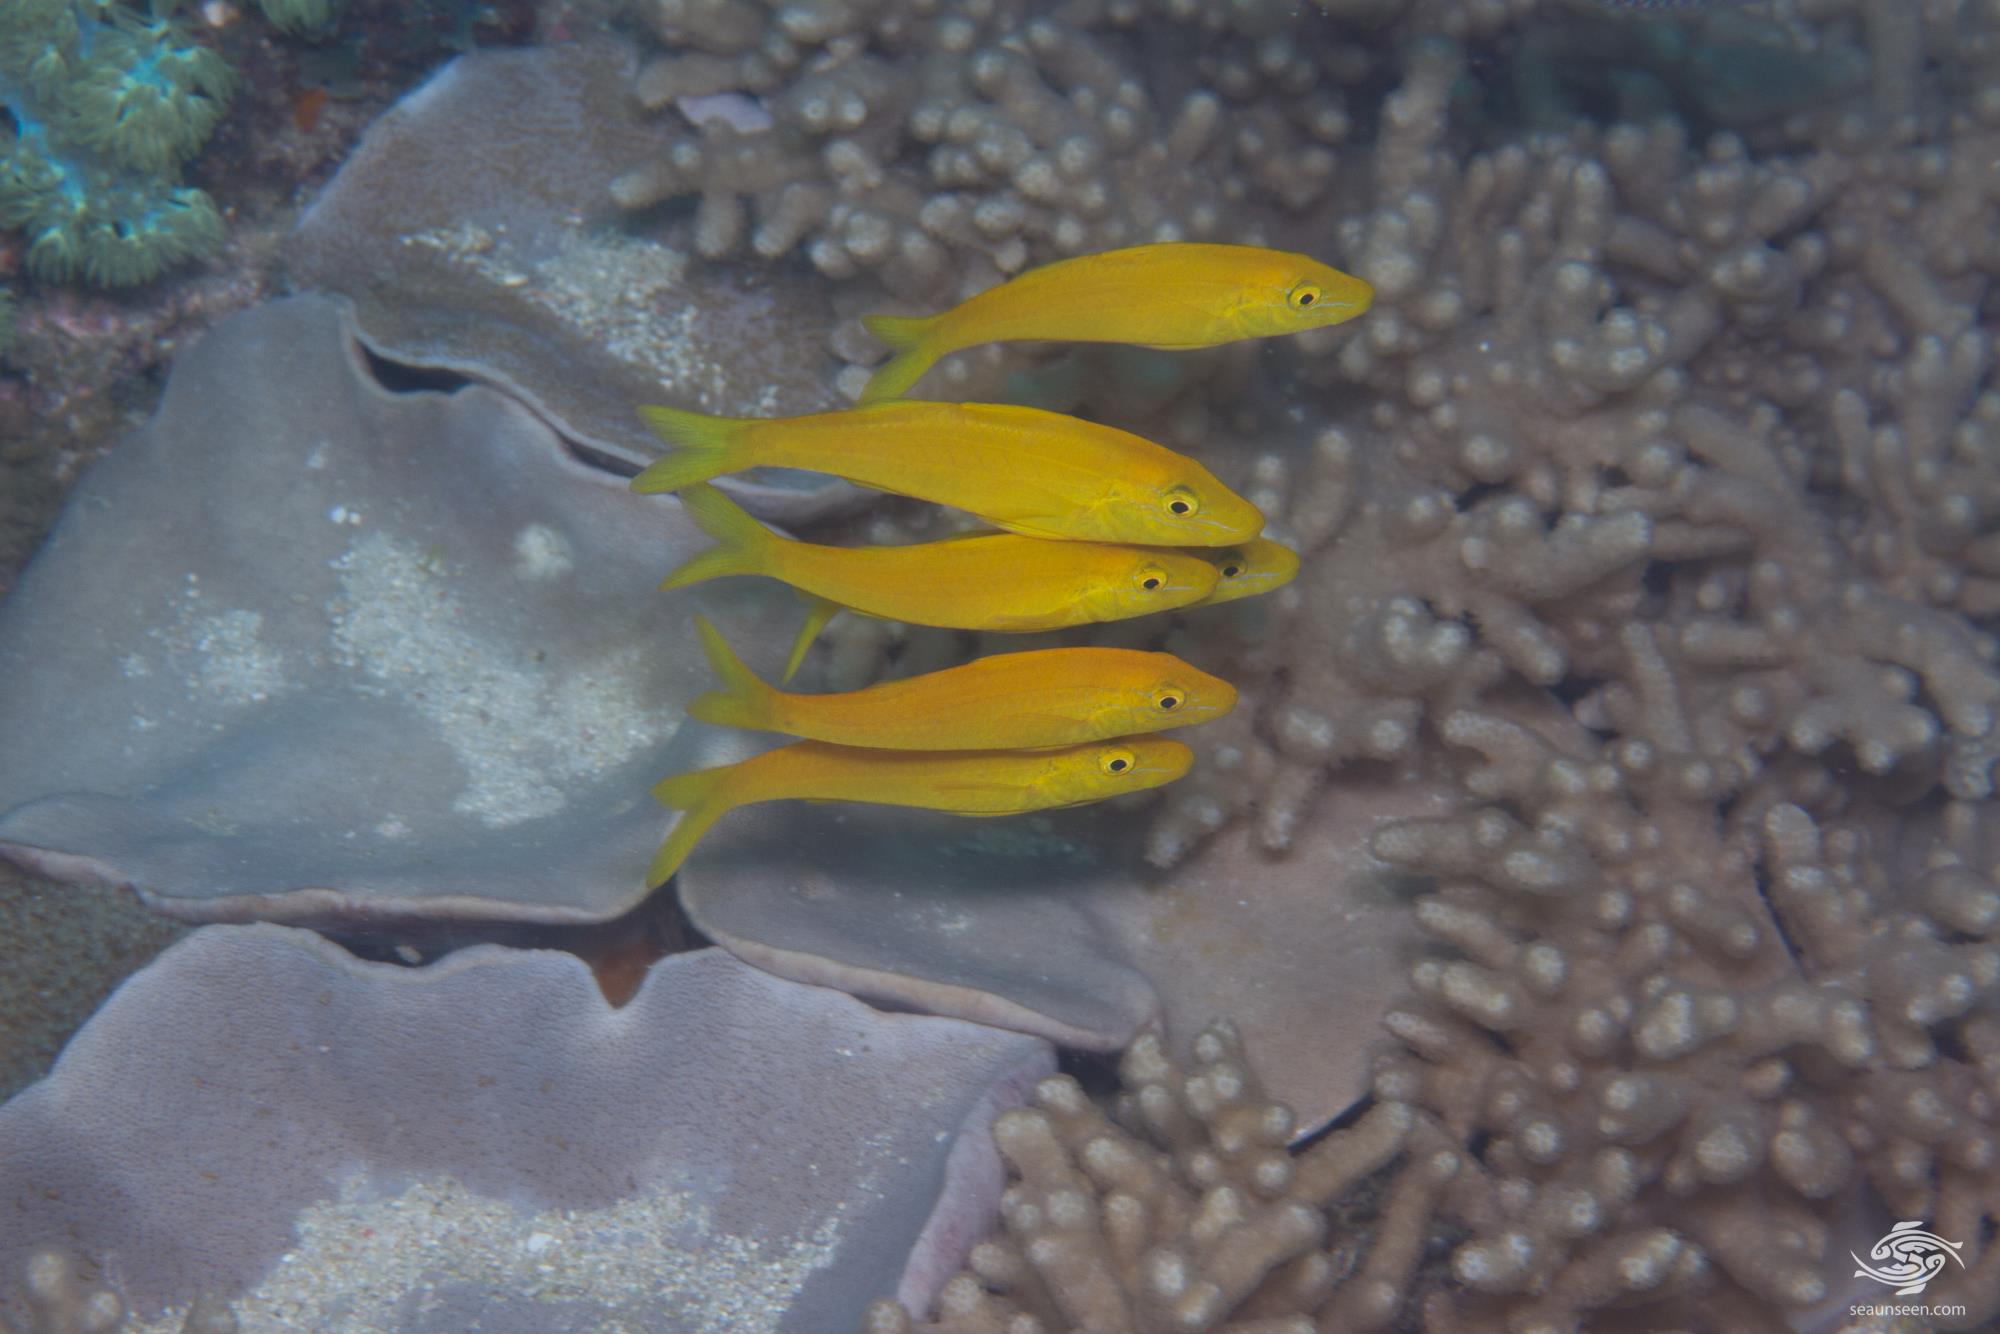 interesting fish behaviour goldsaddle goatfish or yellowsaddle goatfish, Parupeneus cyclostomus